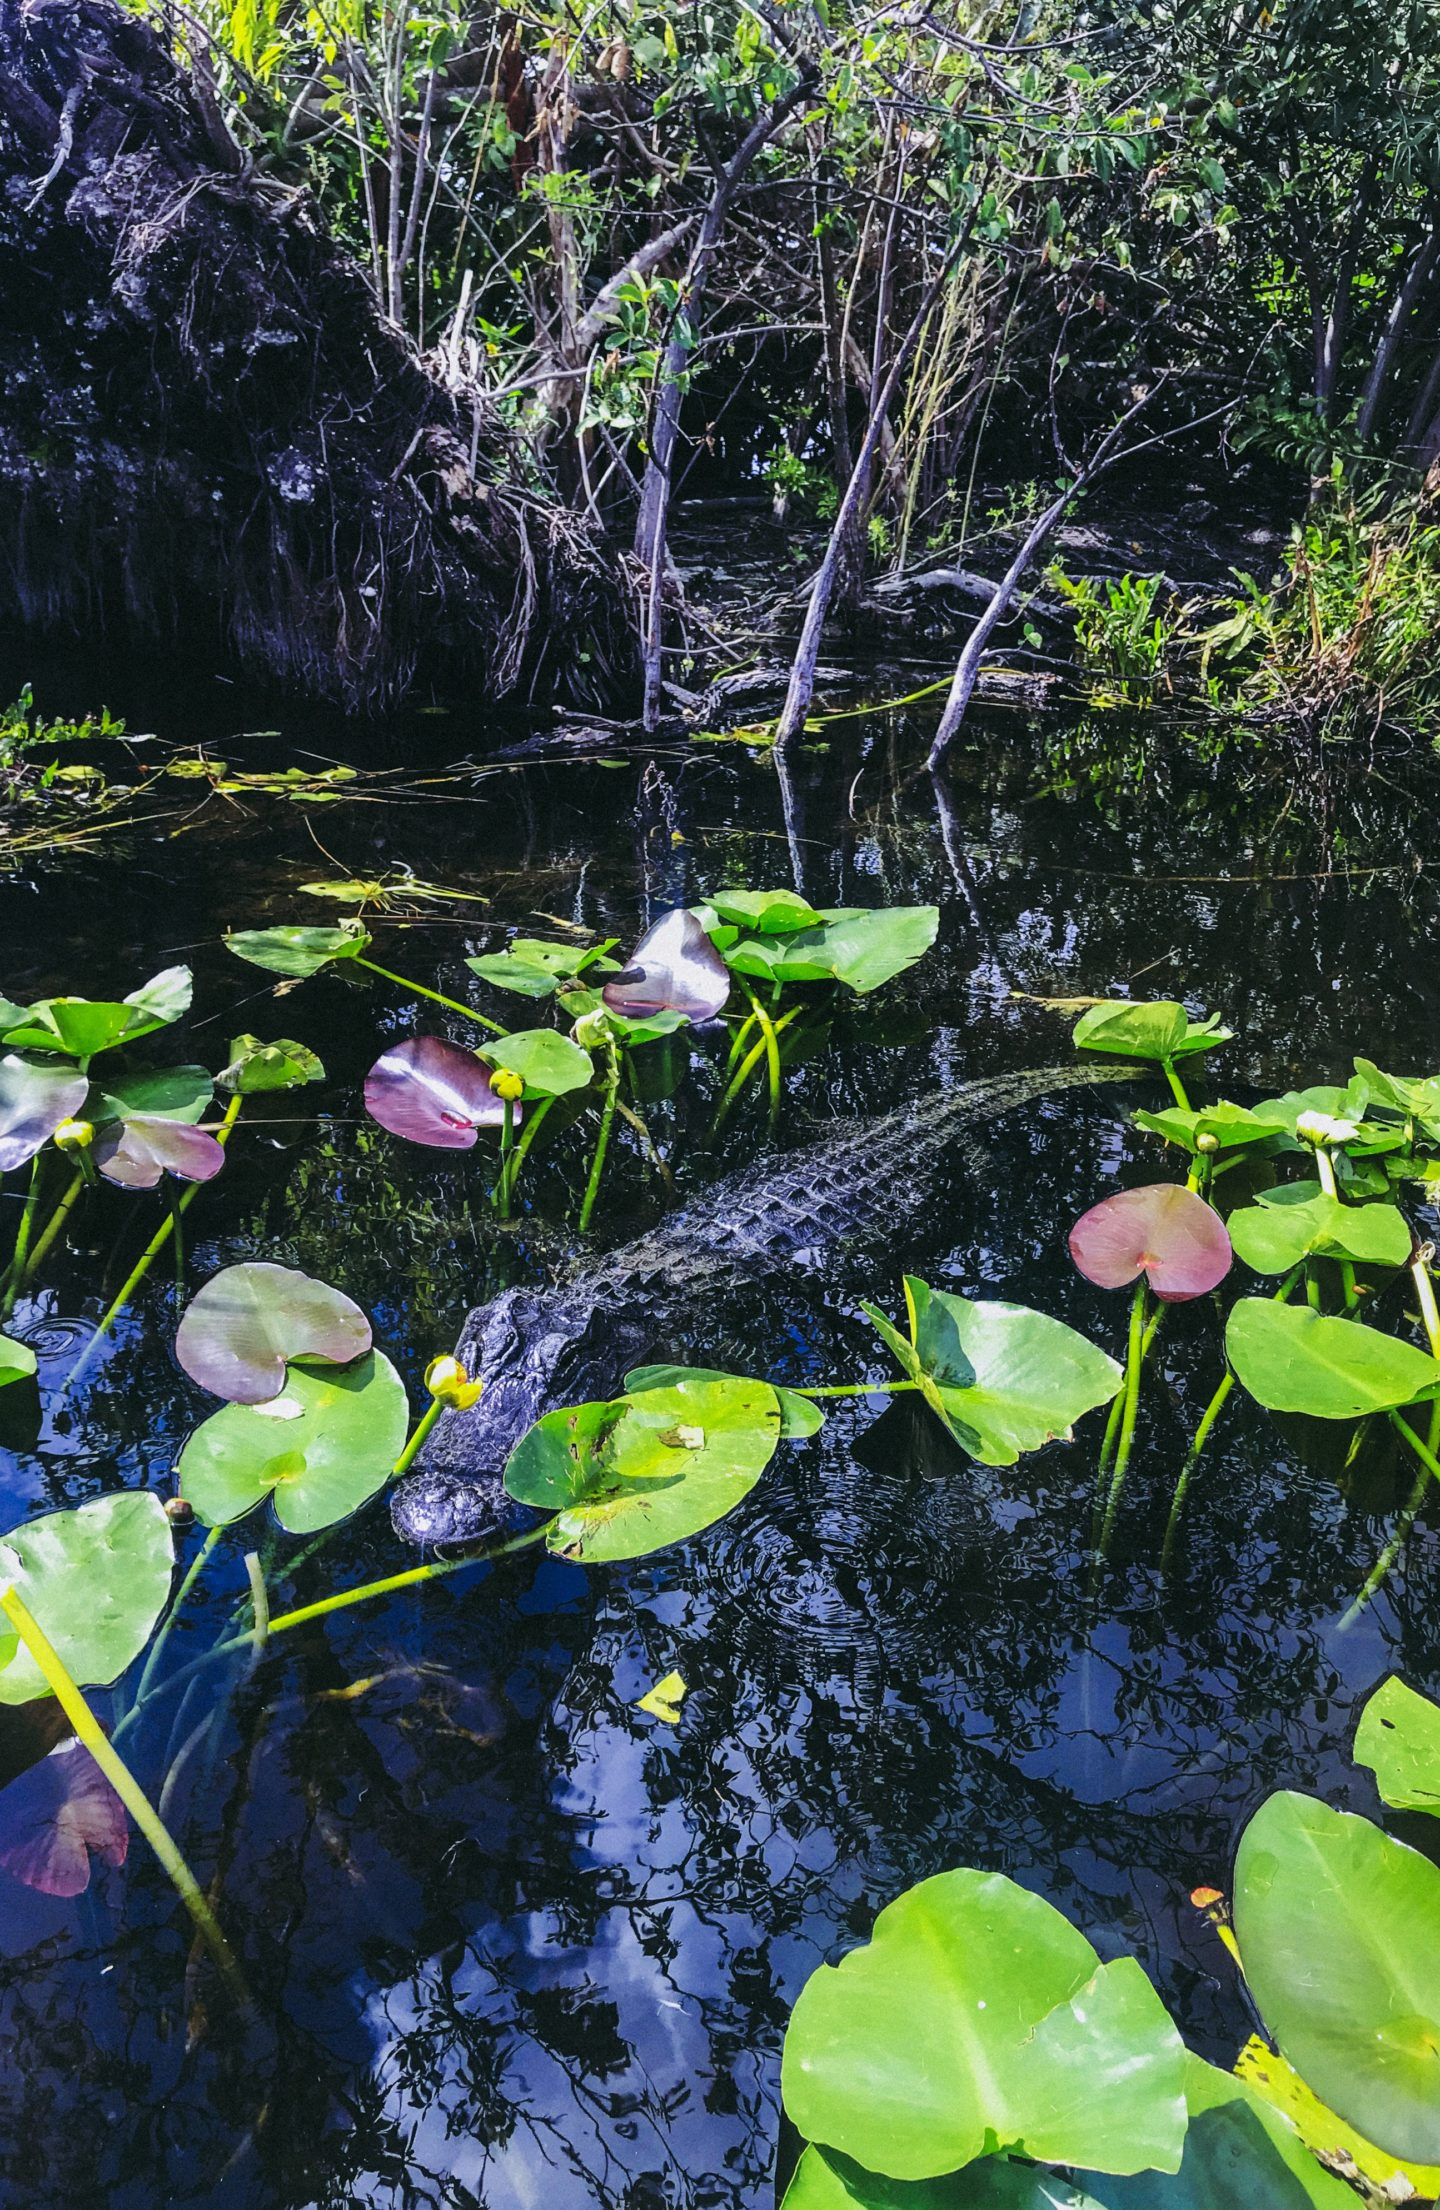 Travel Diary: Miami Mini Vacation Roundup! Everglades Alligator - thecasualfree.com